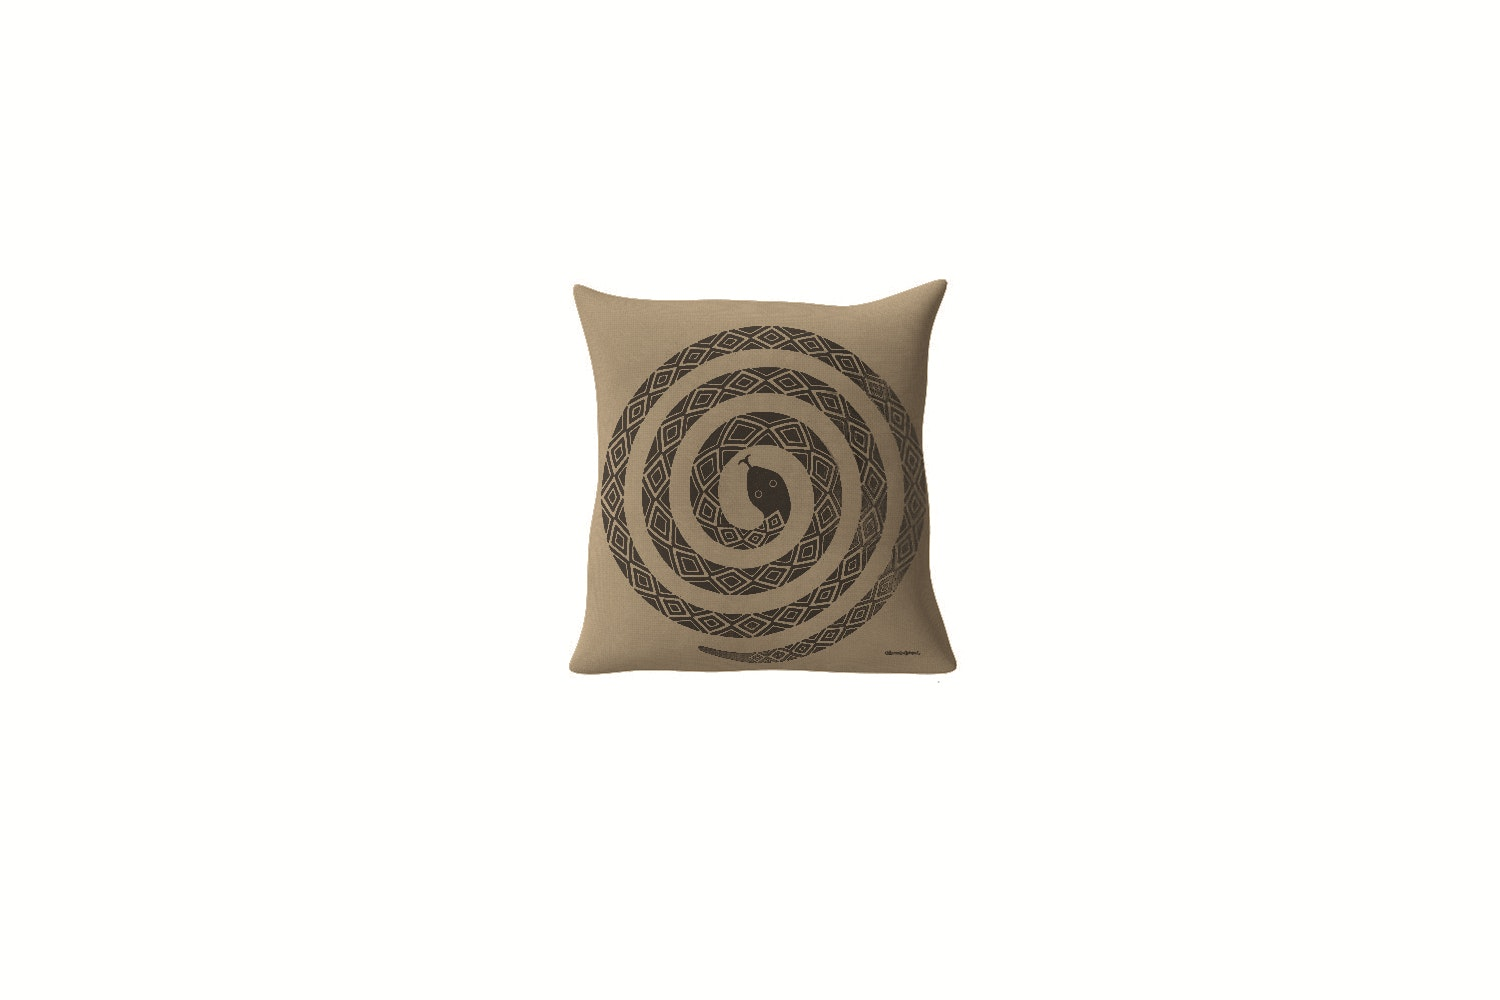 Suita Cushions Printed by Antonio Citterio for Vitra